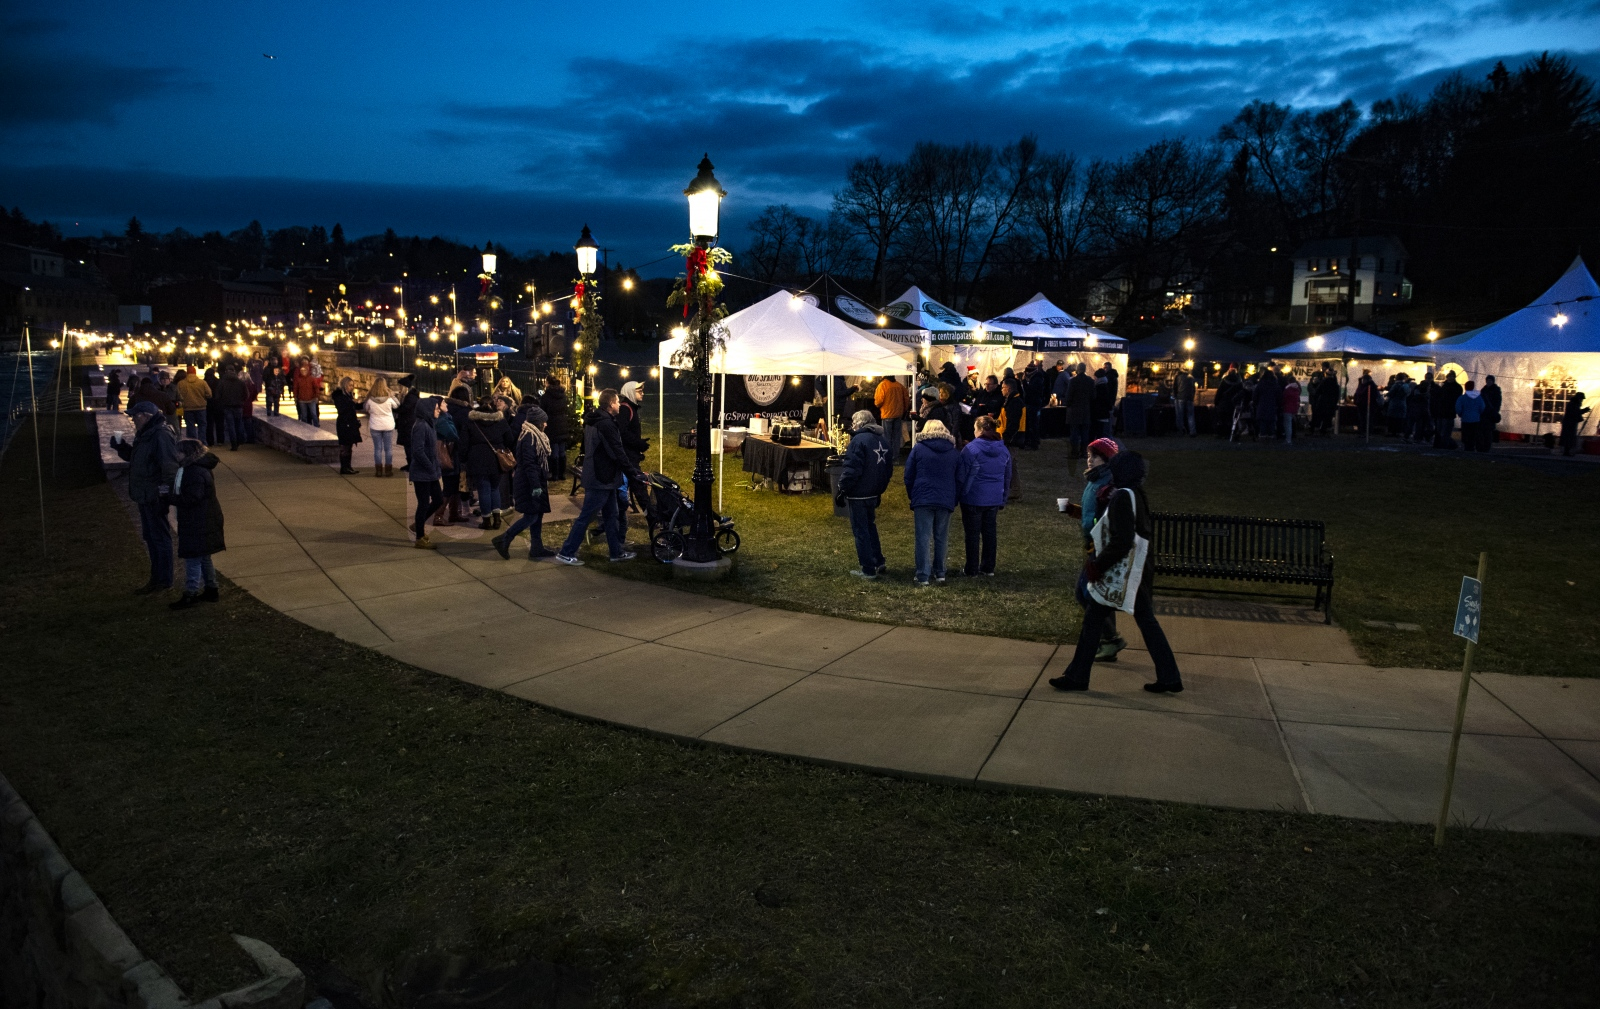 The Bellefonte Lights Winter Market is held along the waterfront walk and the Lamb Street bridge Saturday, Dec. 8, 2018, in Bellefonte, Pa.